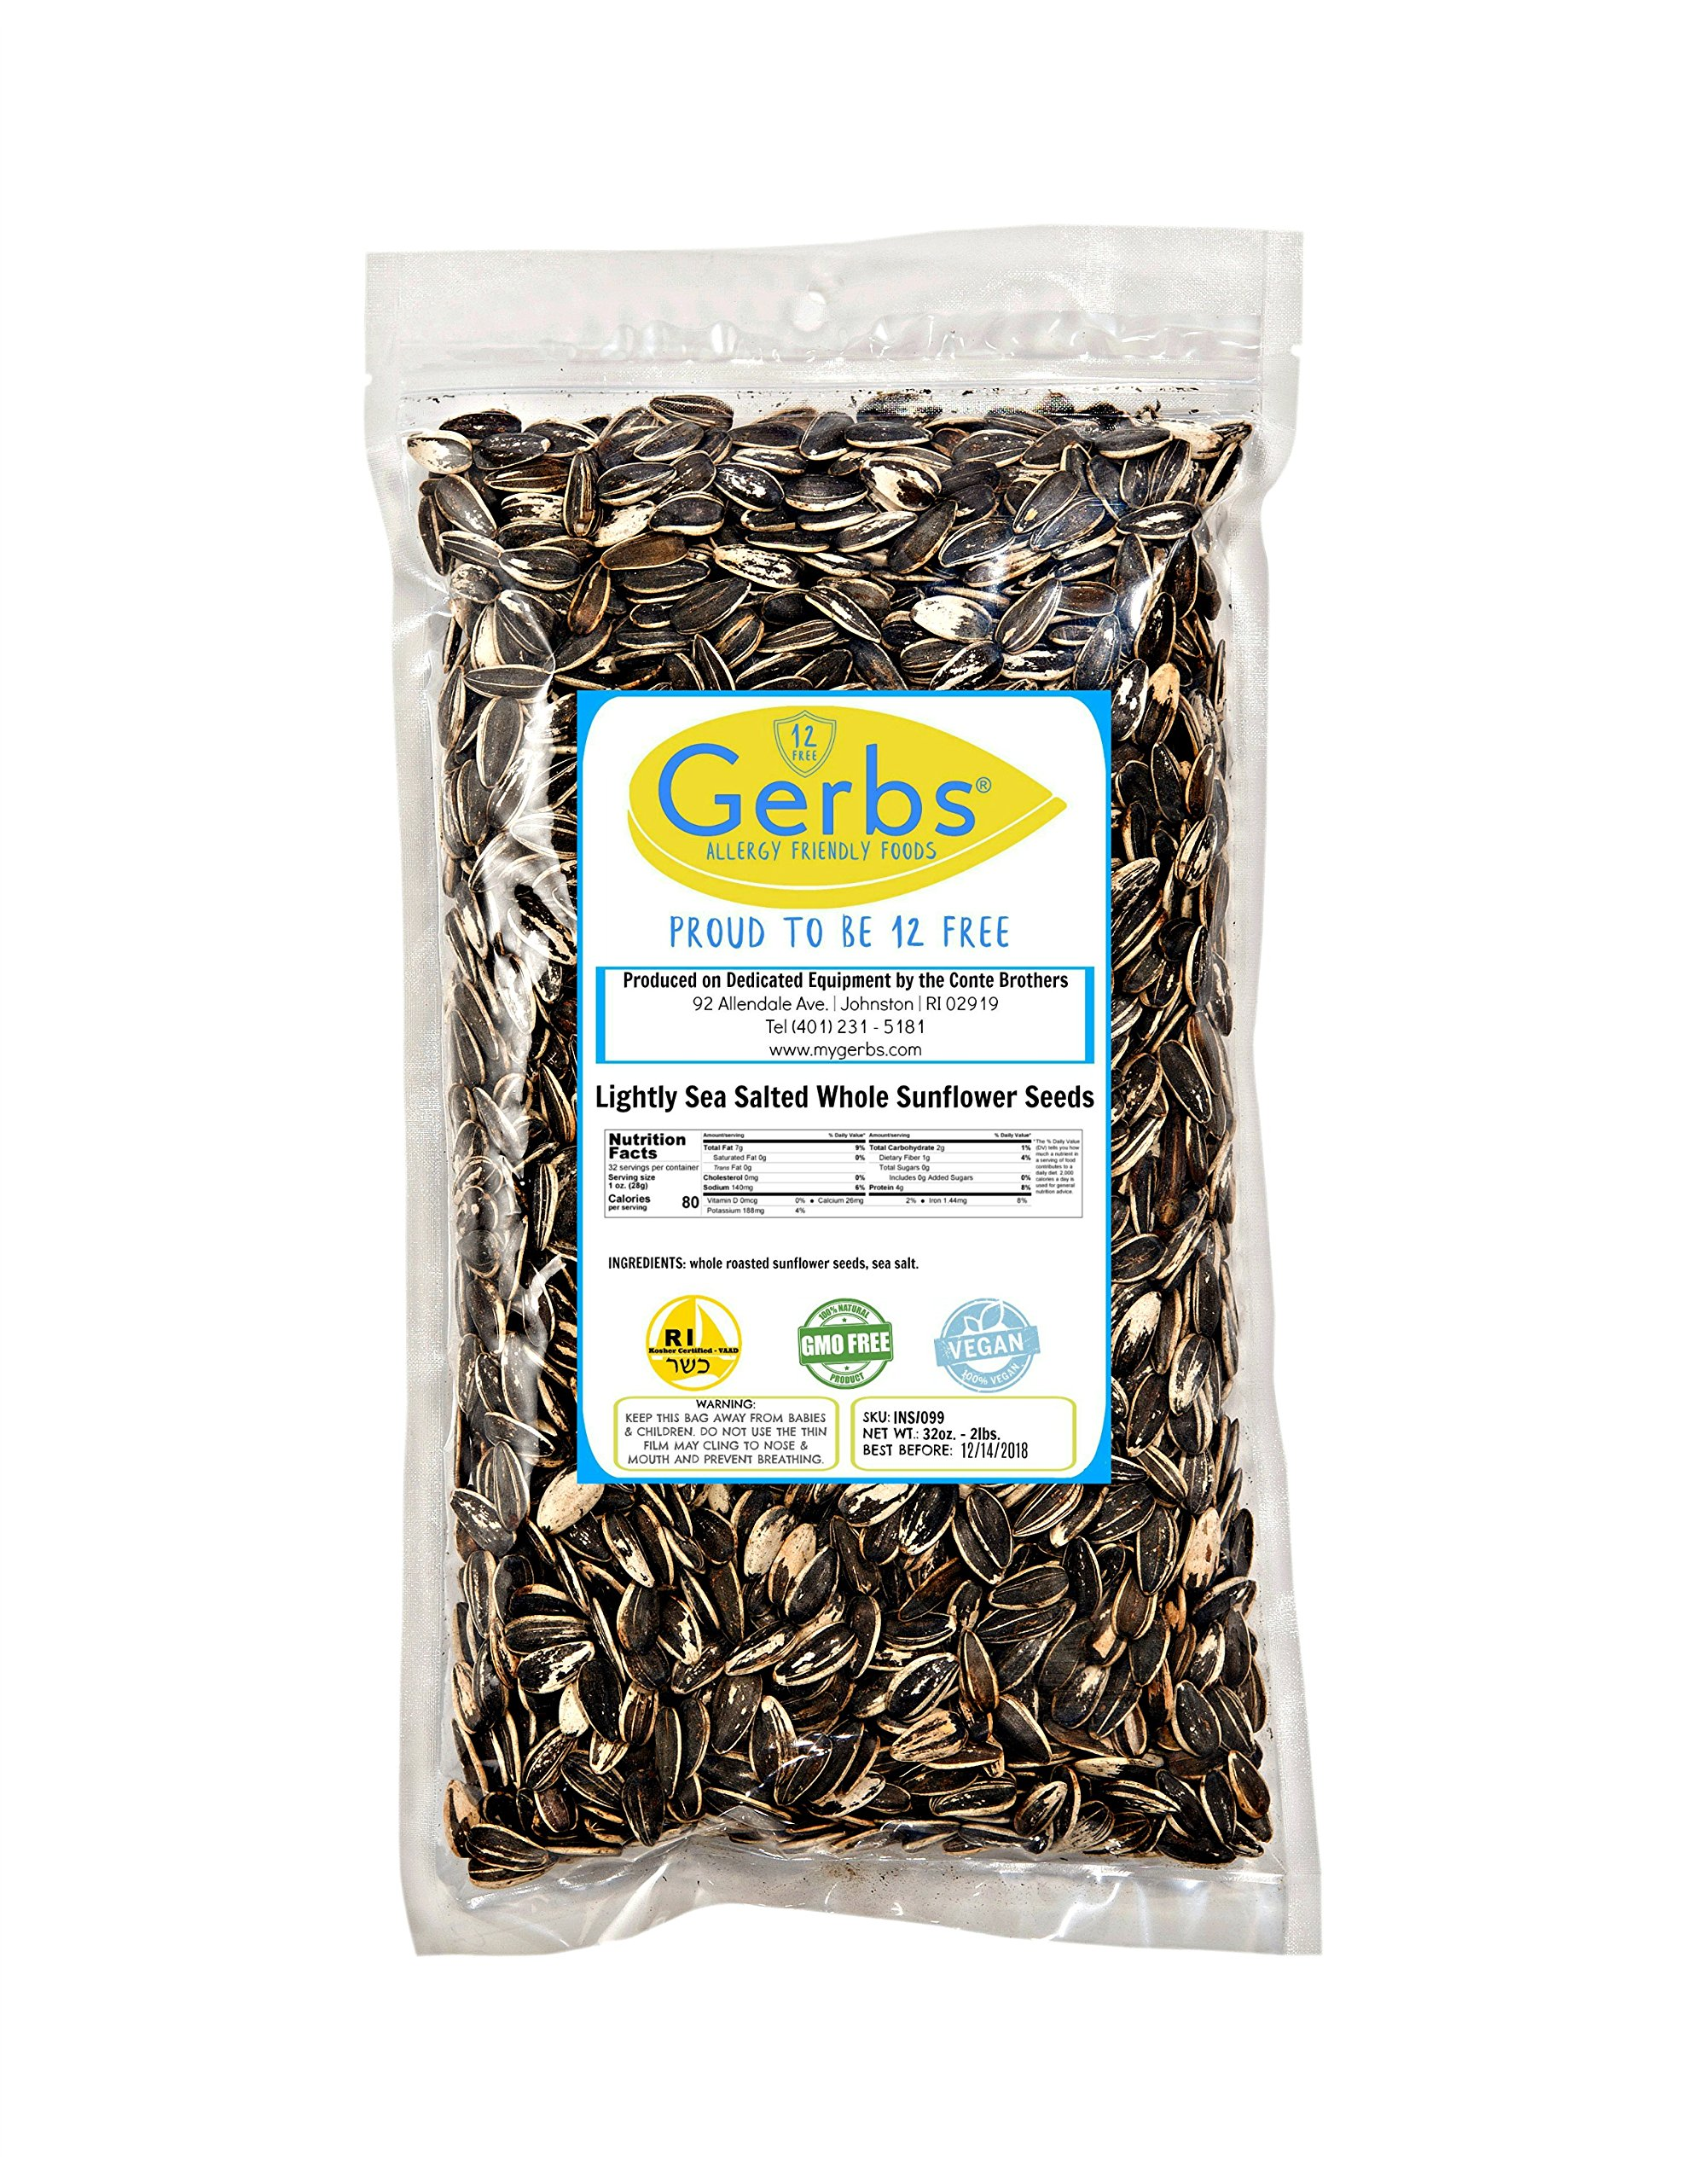 Lightly Sea Salted Sunflower Seed In Shell by Gerbs - 2 LBS - Top 11 Food Allergen Free & Non GMO - Premium Dry Roasted Seeds – COG USA